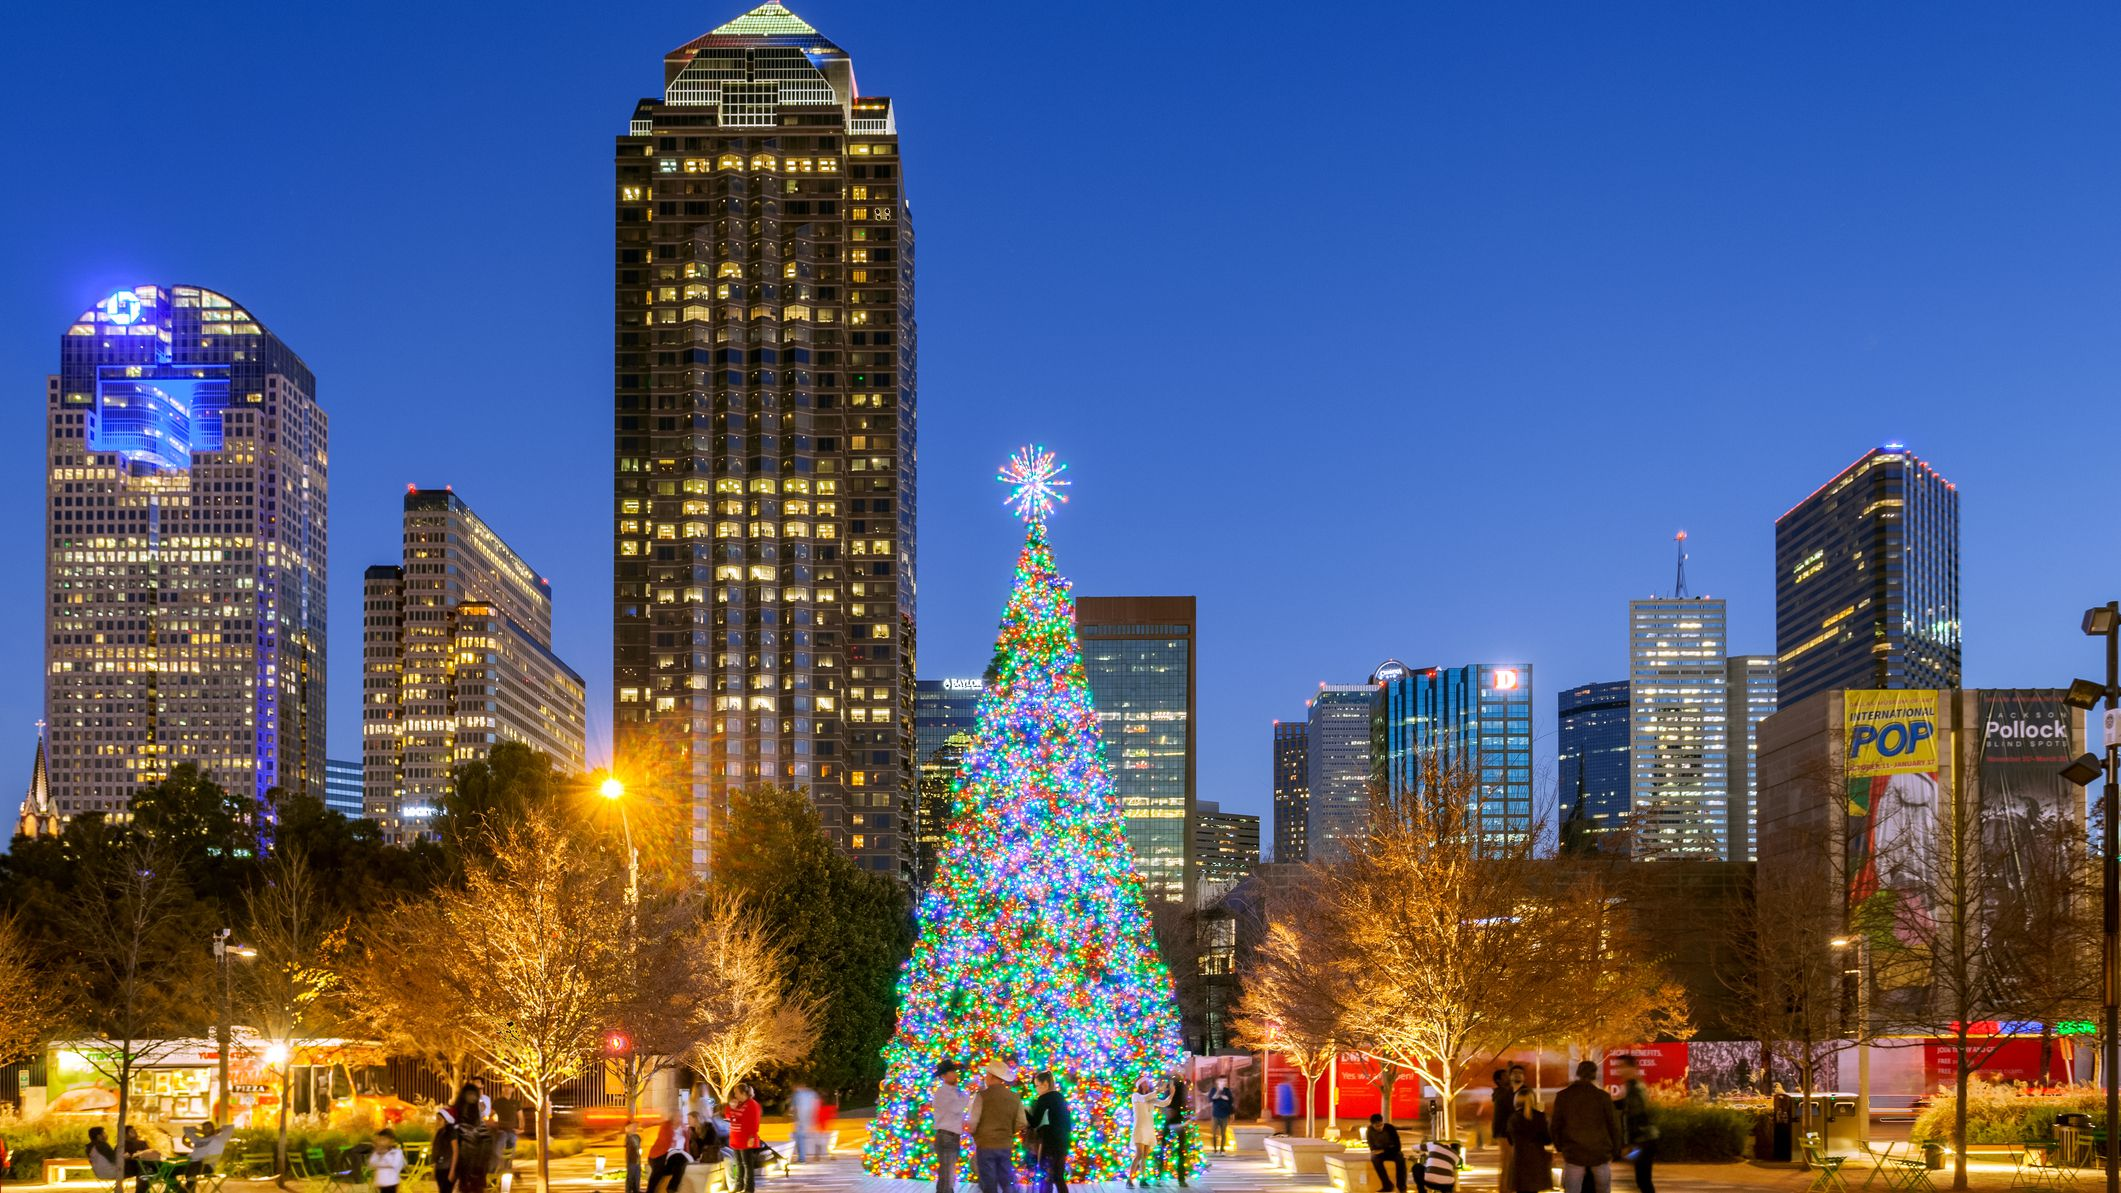 Dfw Christmas Music Radio Stations 2021 9 Best Holiday Light Displays In Dallas Fort Worth